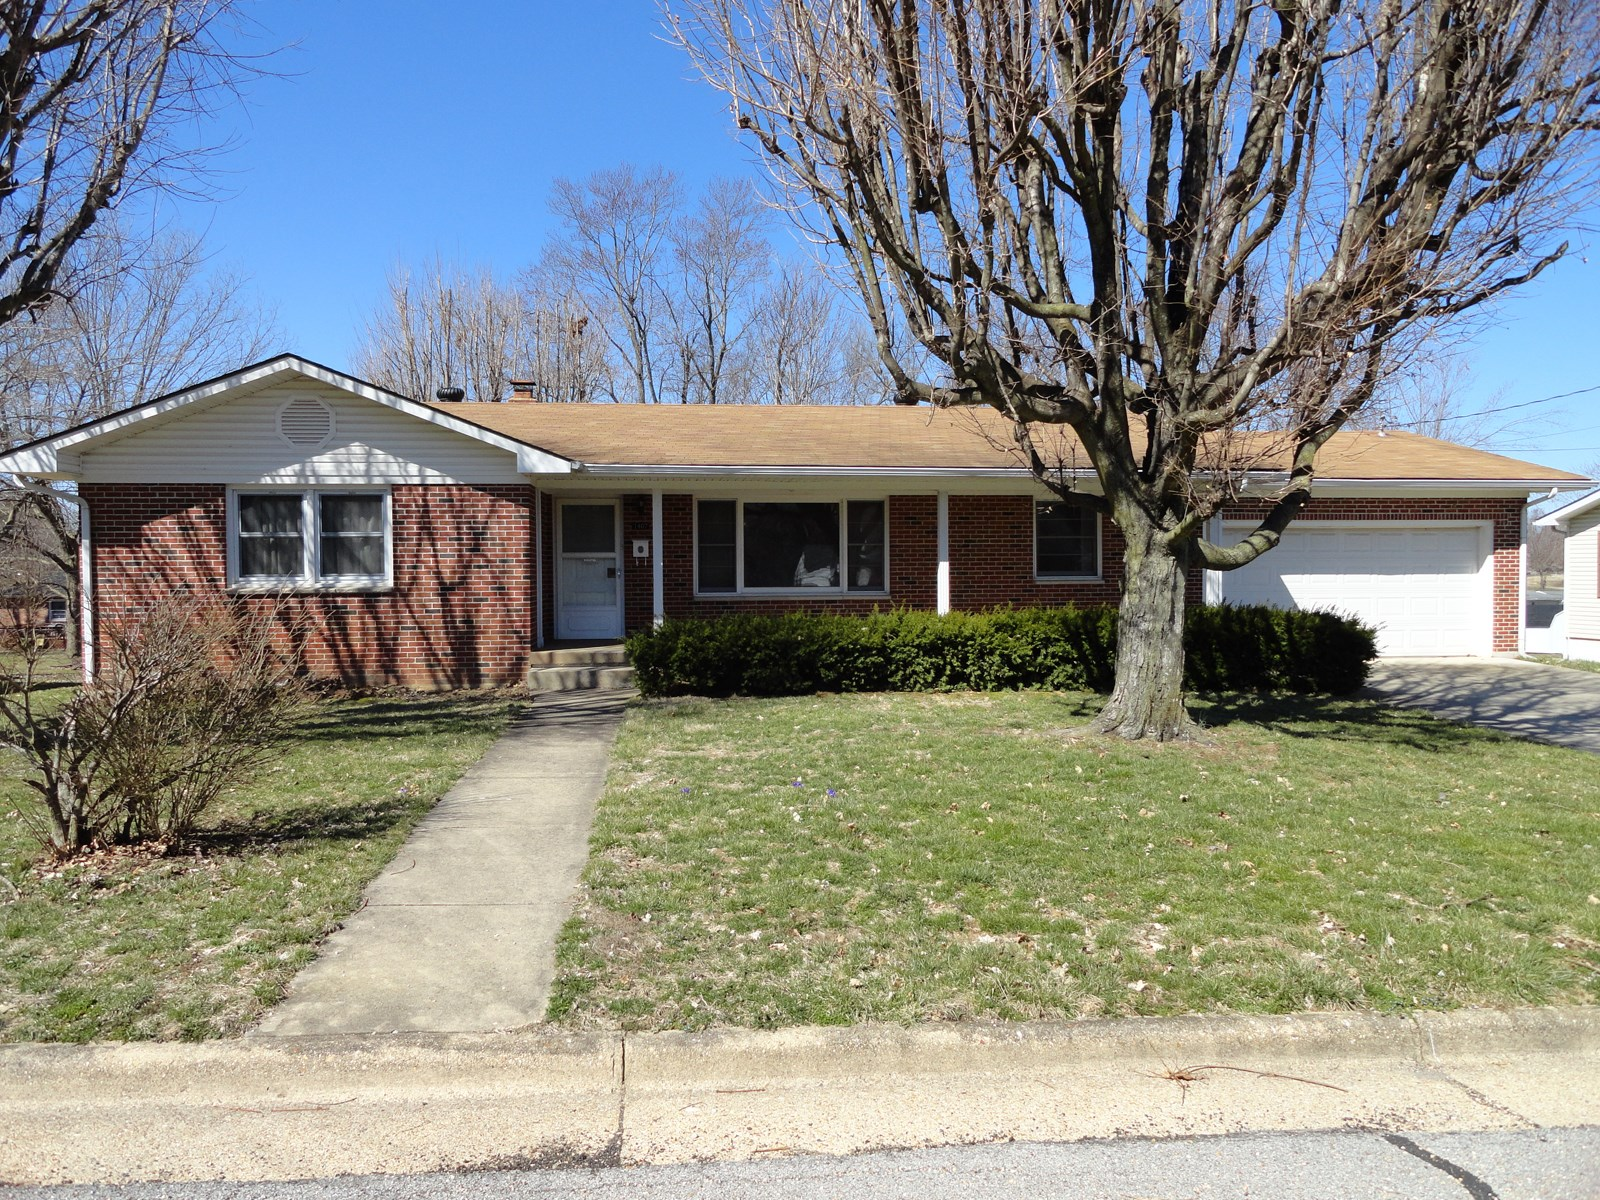 All brick 3 bedroom home for sale in Salem, MO!